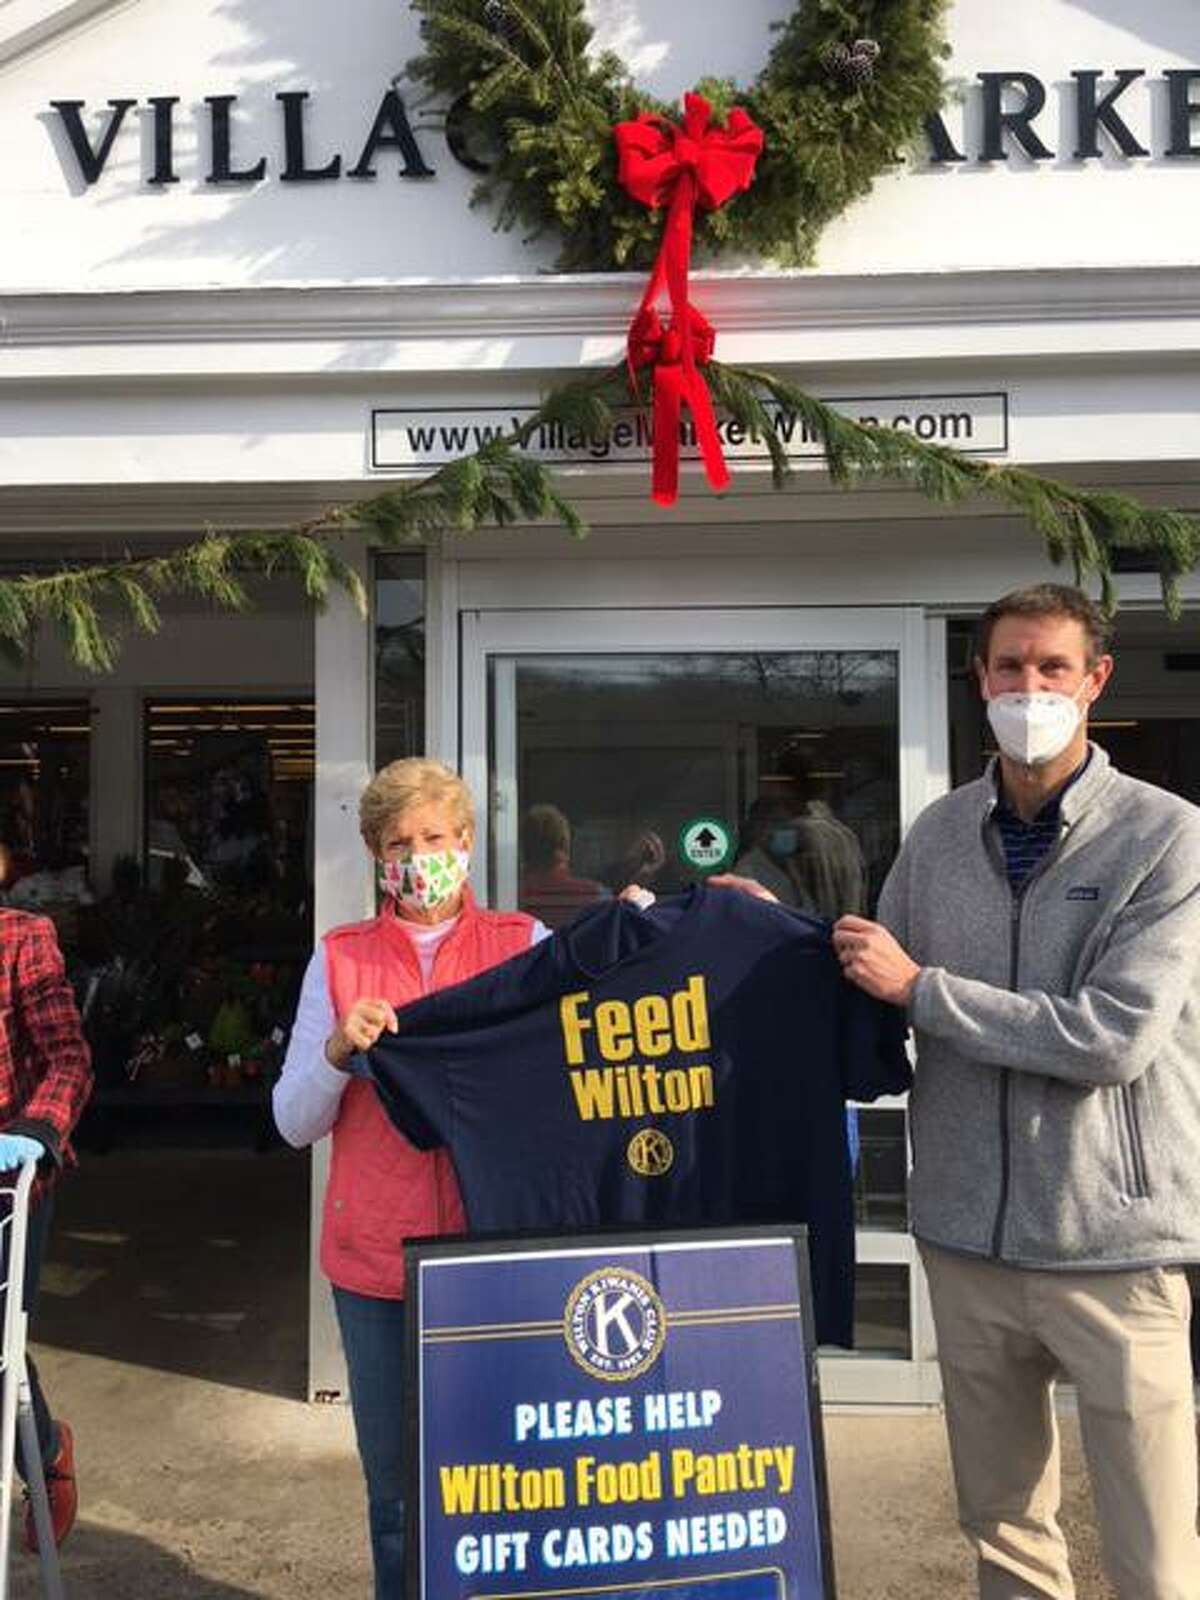 Kiwanis Vice President Carol Boehly and Village Market co-owner Tim Dolnier stand outside the market on Dec. 13, following a successful fundraiser for Wilton's food pantry.